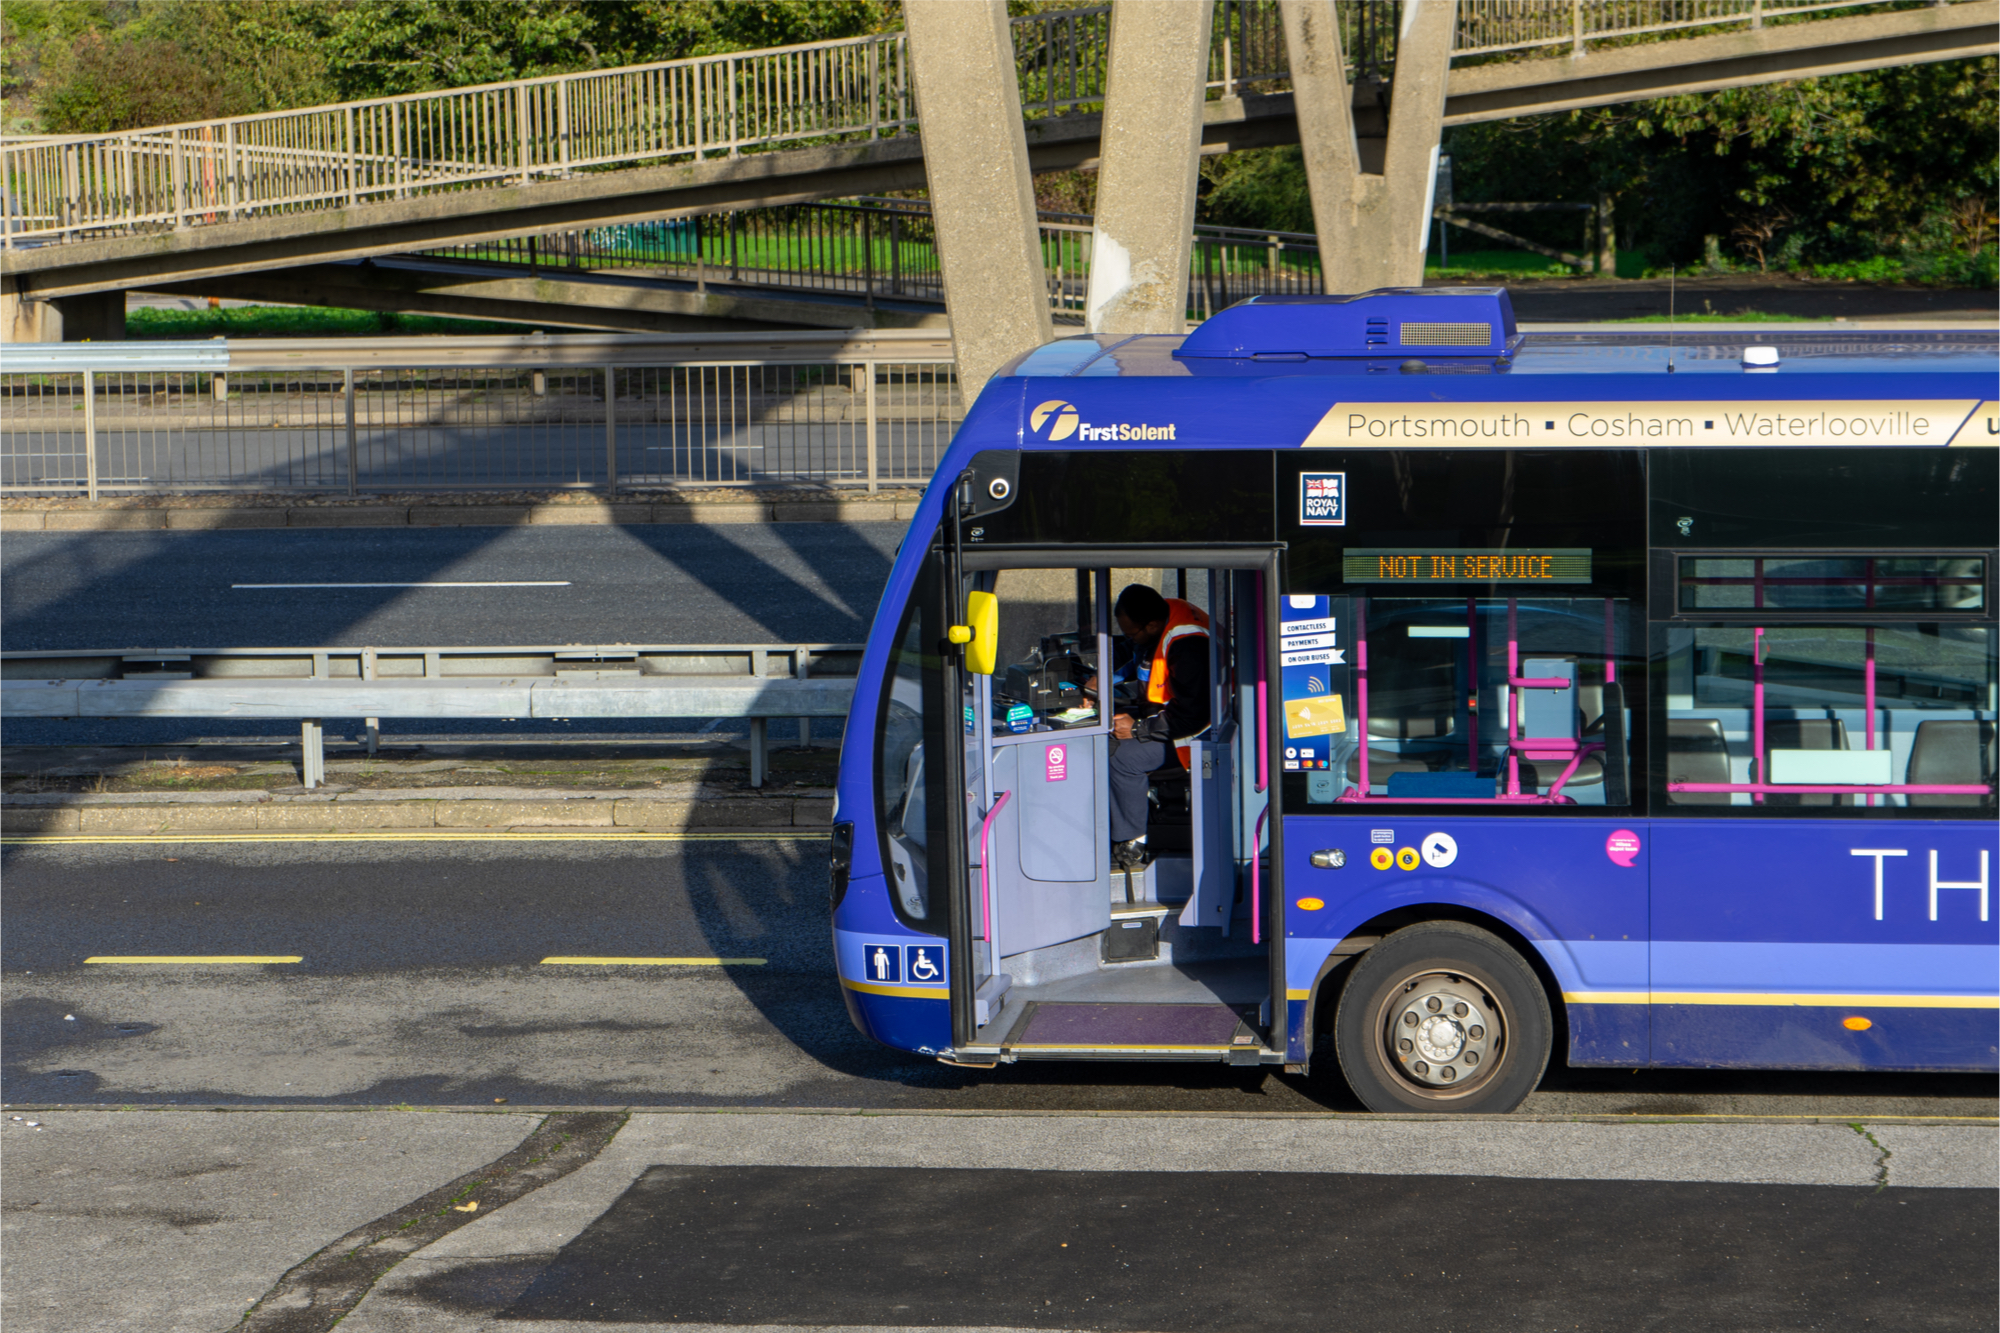 £56 million announced to transform Portsmouth and South East Hampshire transport network